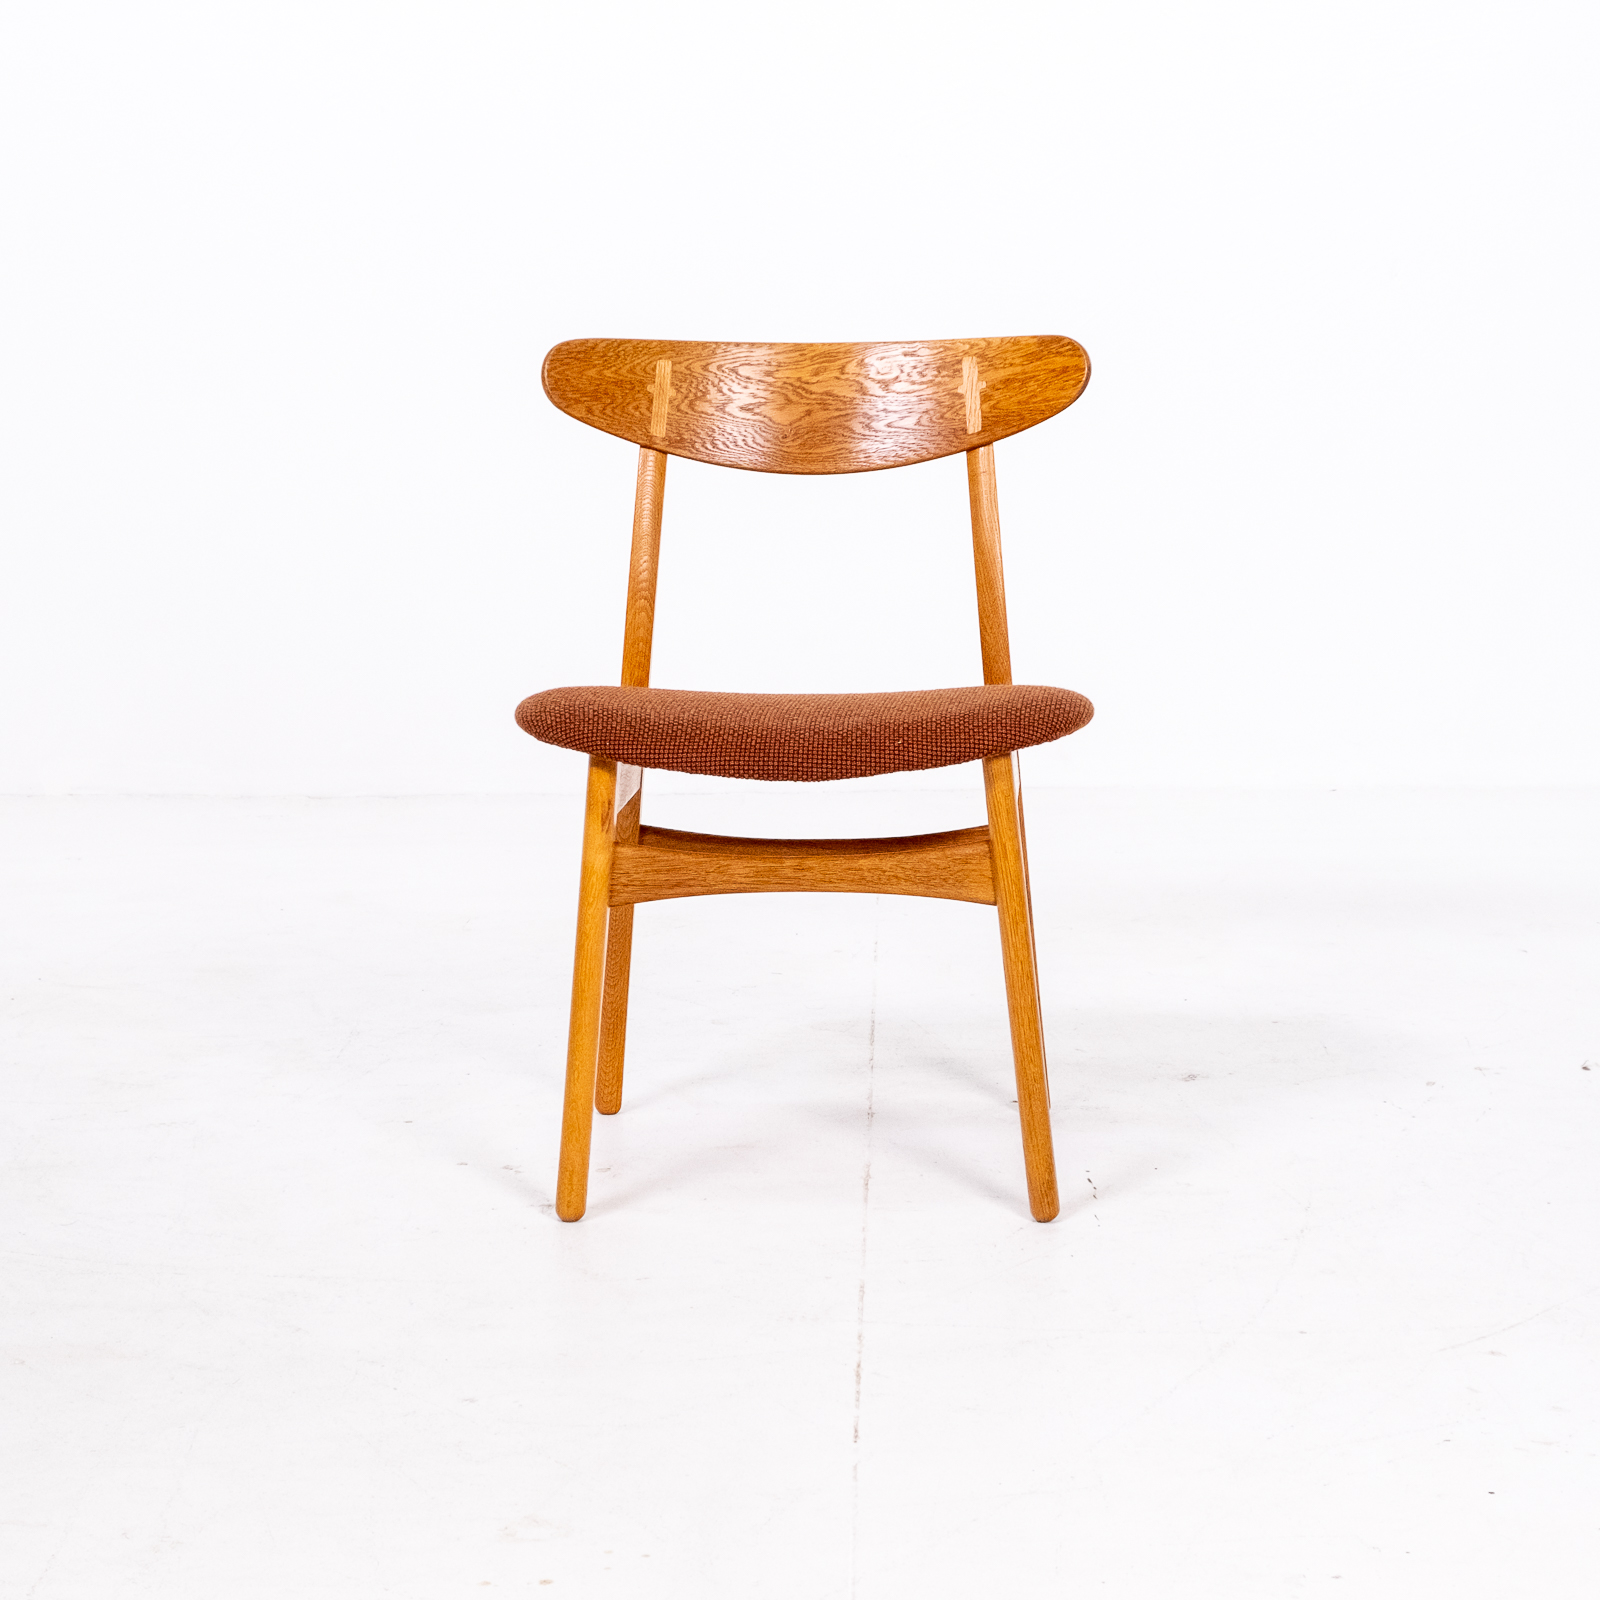 Set Of 4 Ch 30 Dining Chairs By Hans Wegner For Carl Hansen And Son In Oak And Kvadart Upholstery, 1950s, Denmark 09